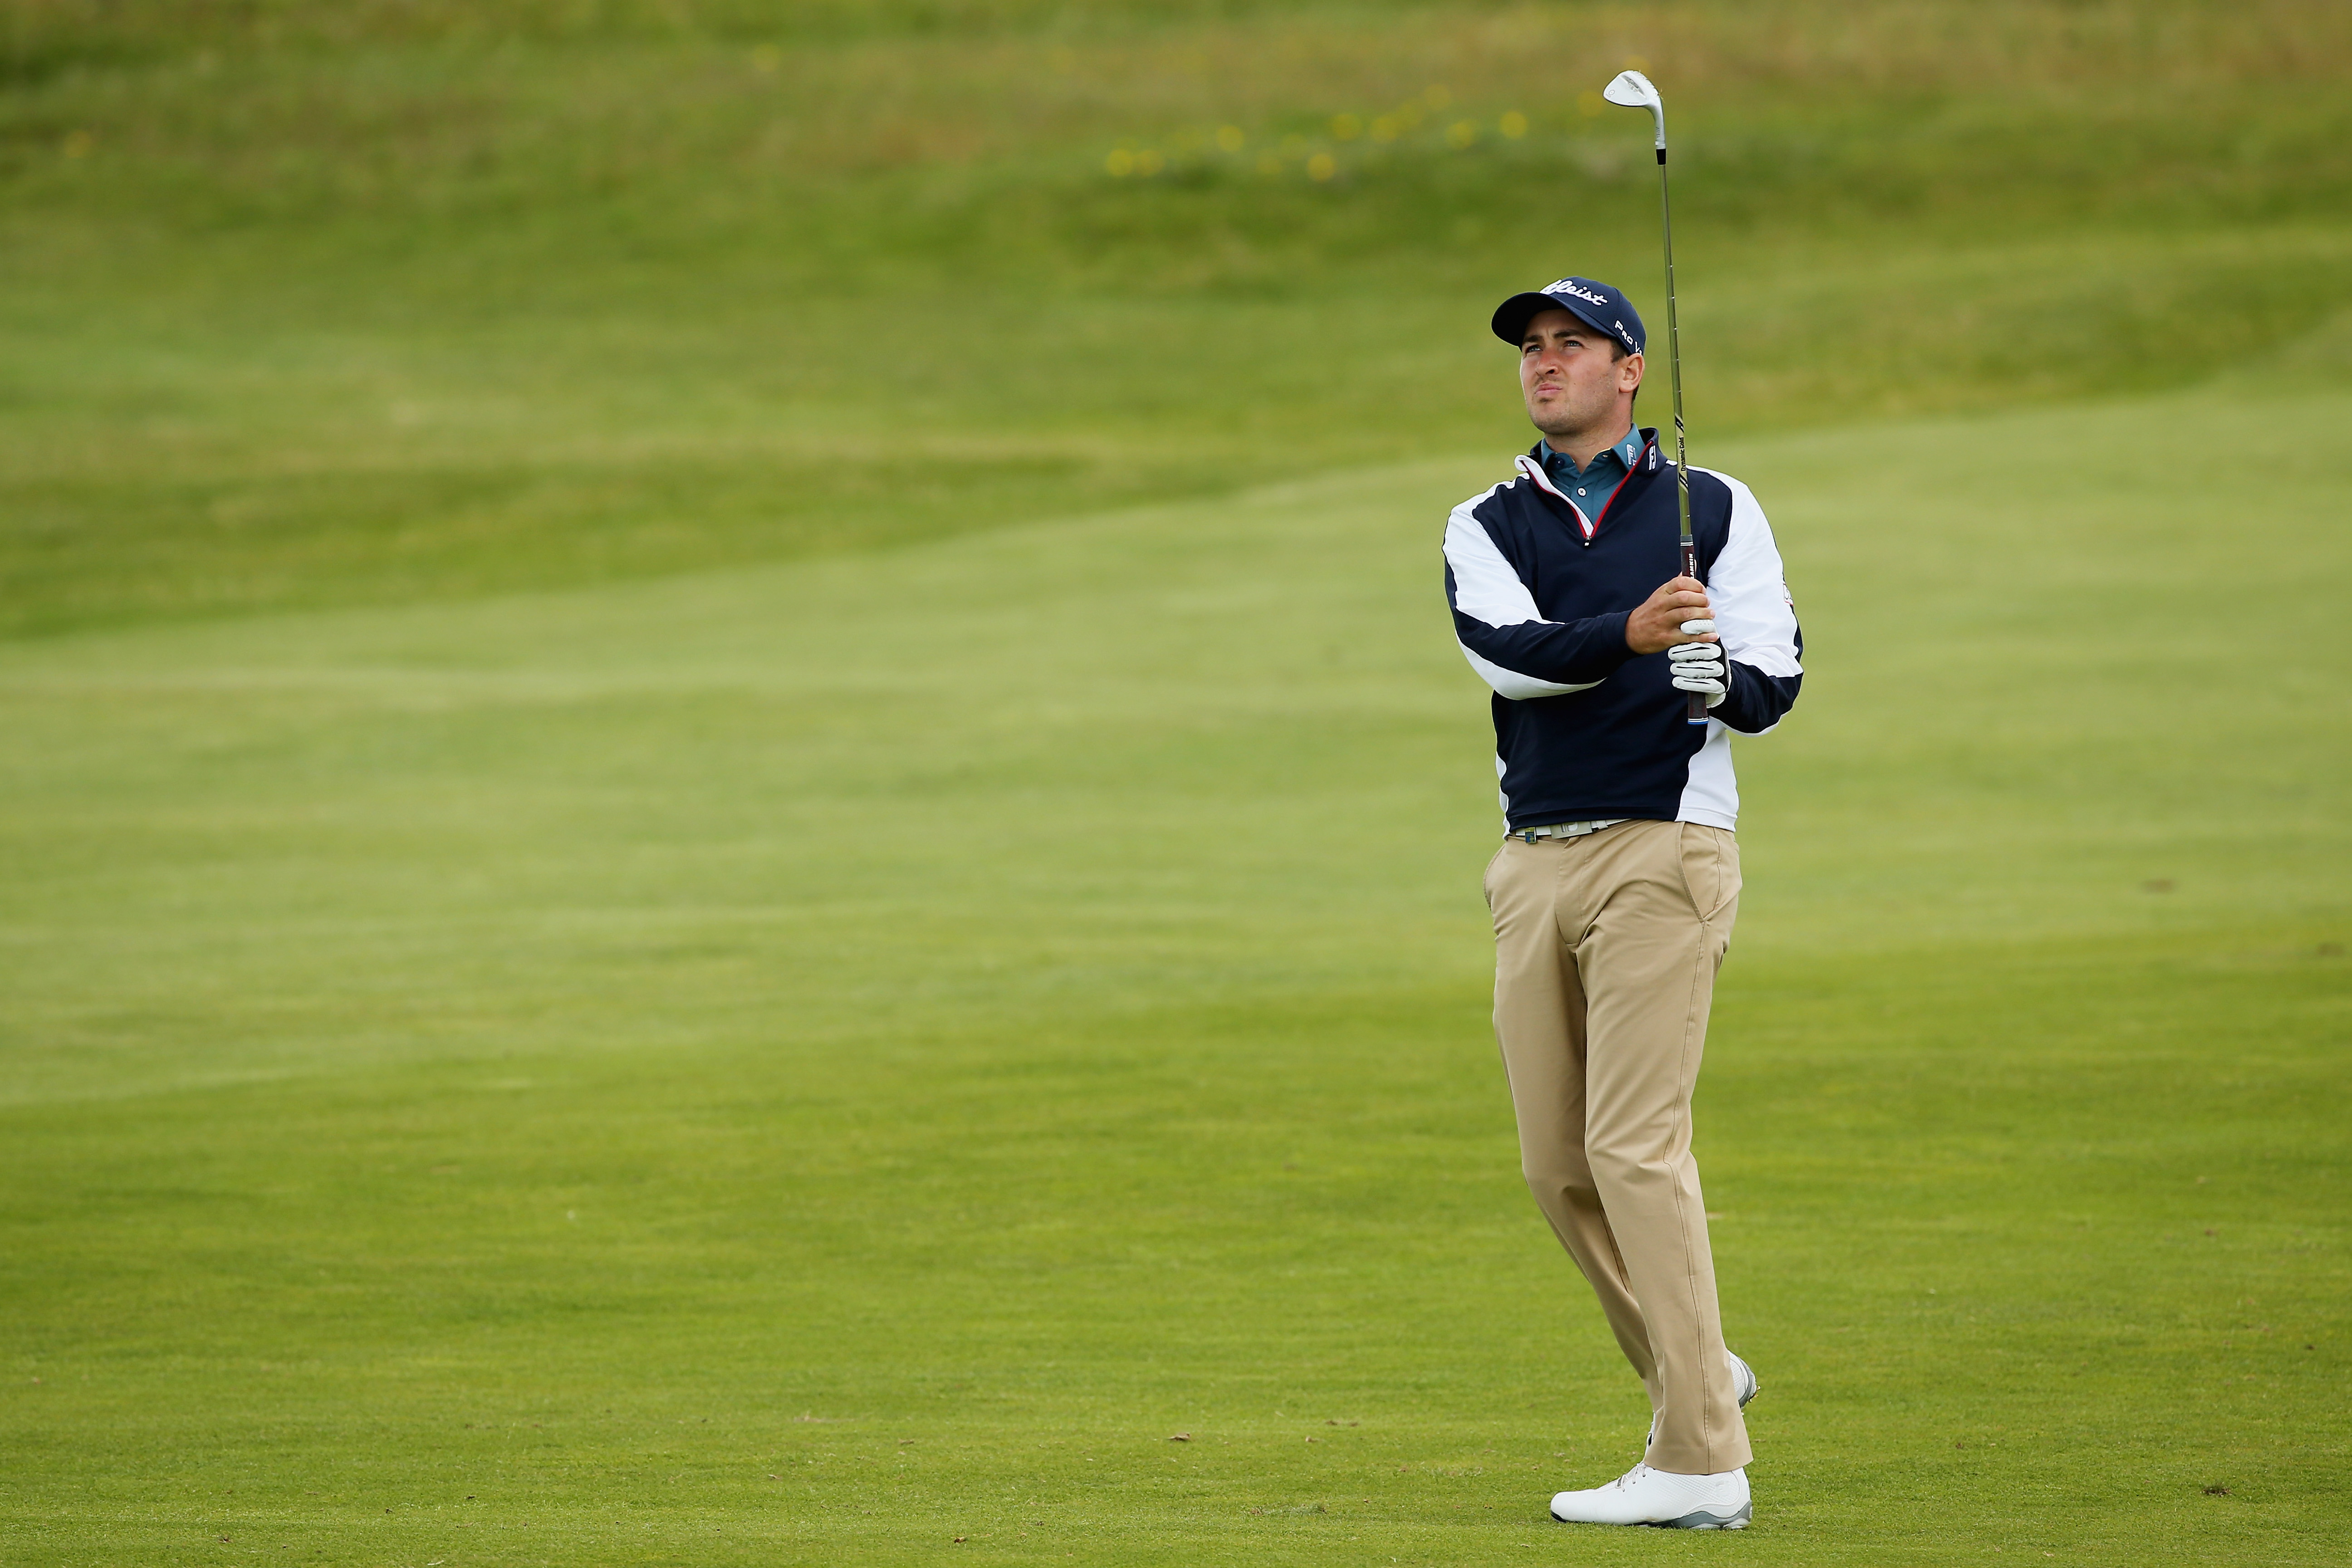 Daniel Brooks hits an approach shot on the 16th hole during the second round of the Scottish Open.